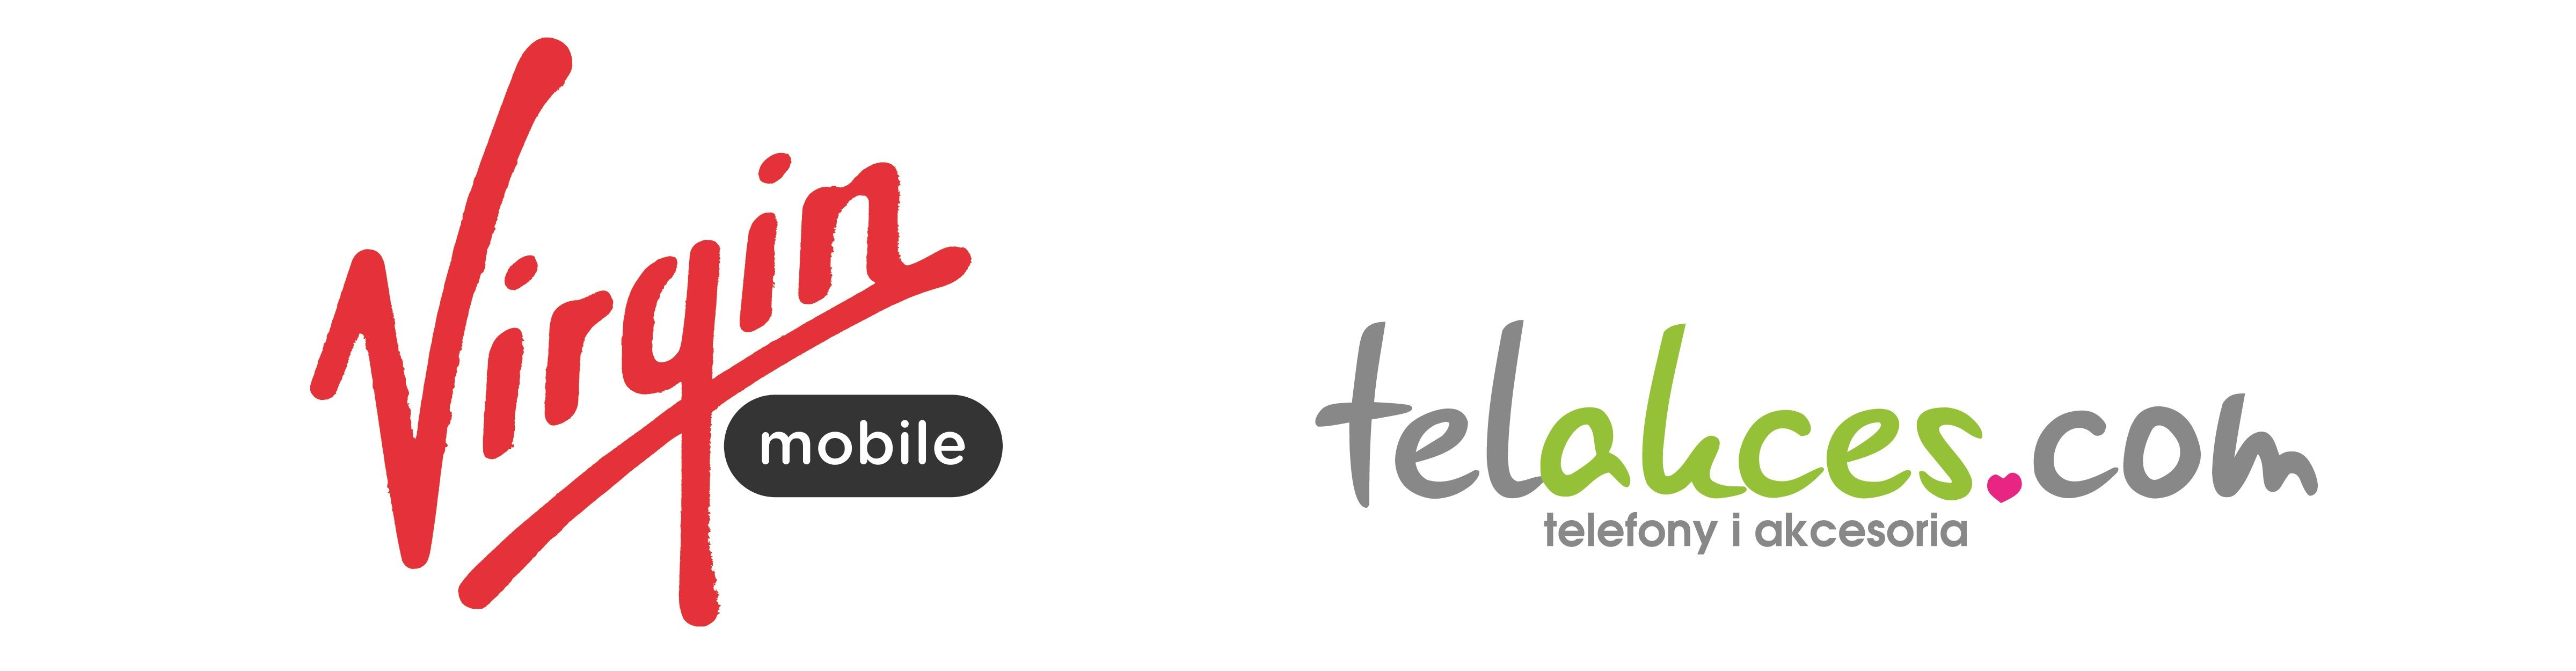 Telakces.com & Virgin Mobile